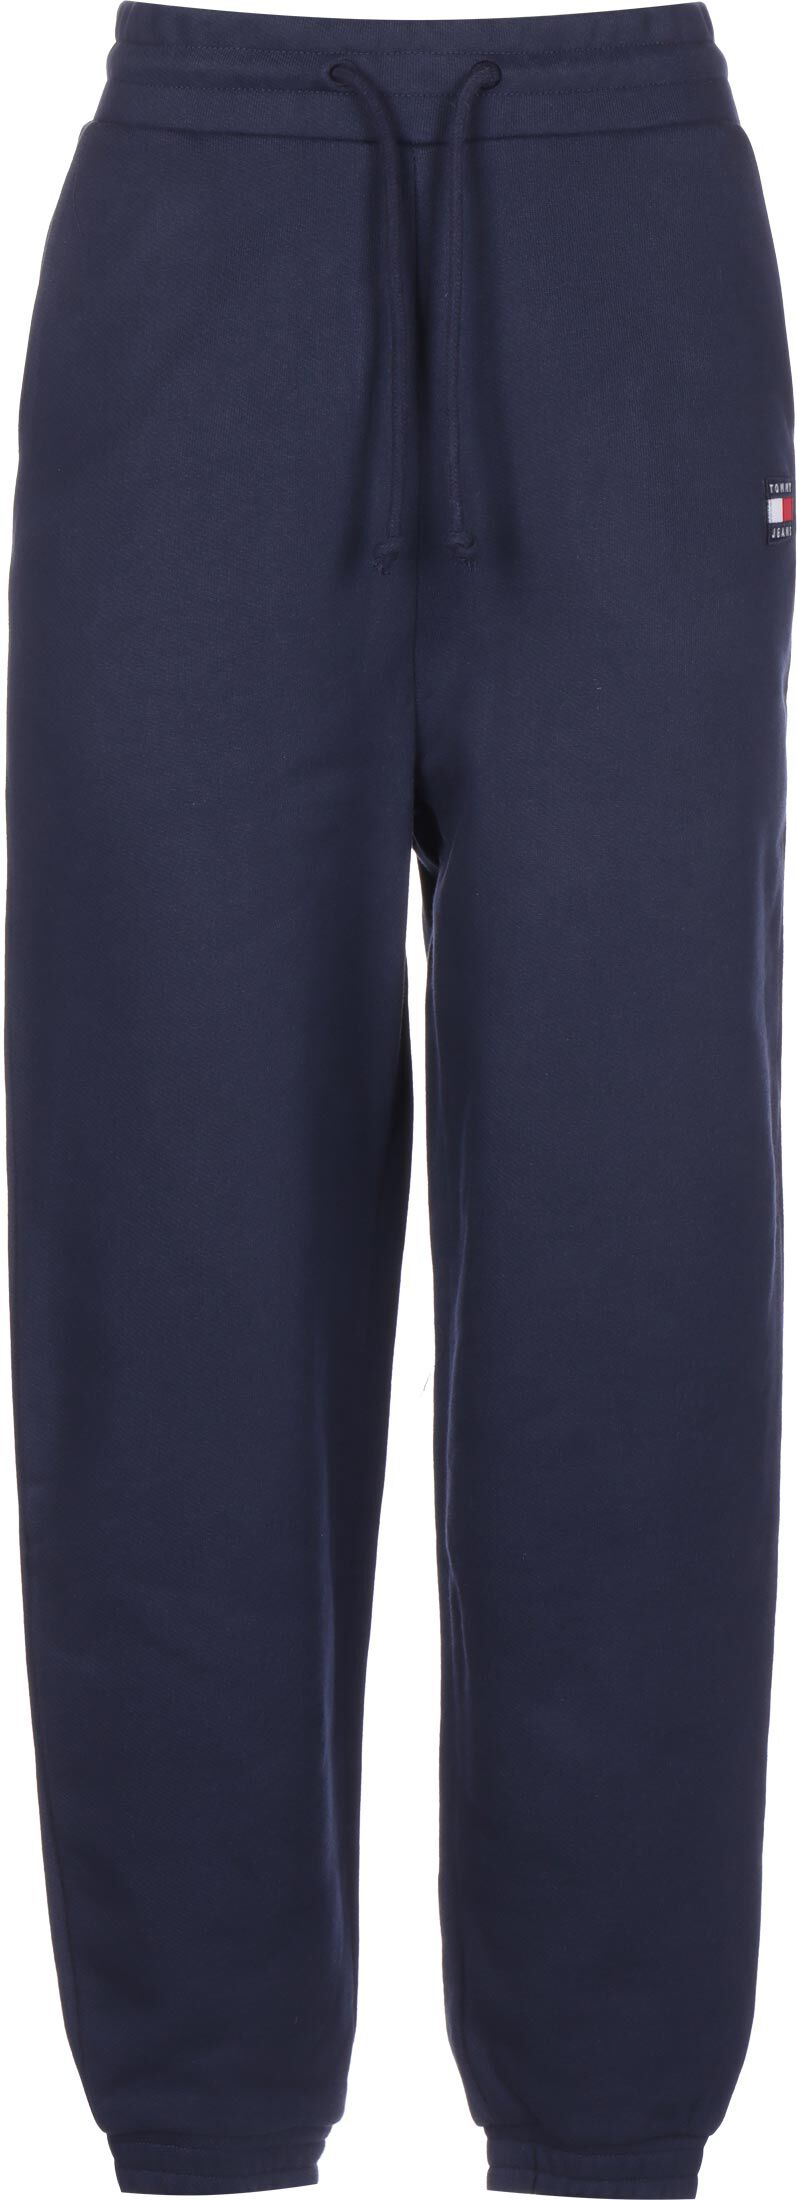 Tommy Jeans Relaxed Badge Damen Jogginghose blau von Tommy Jeans